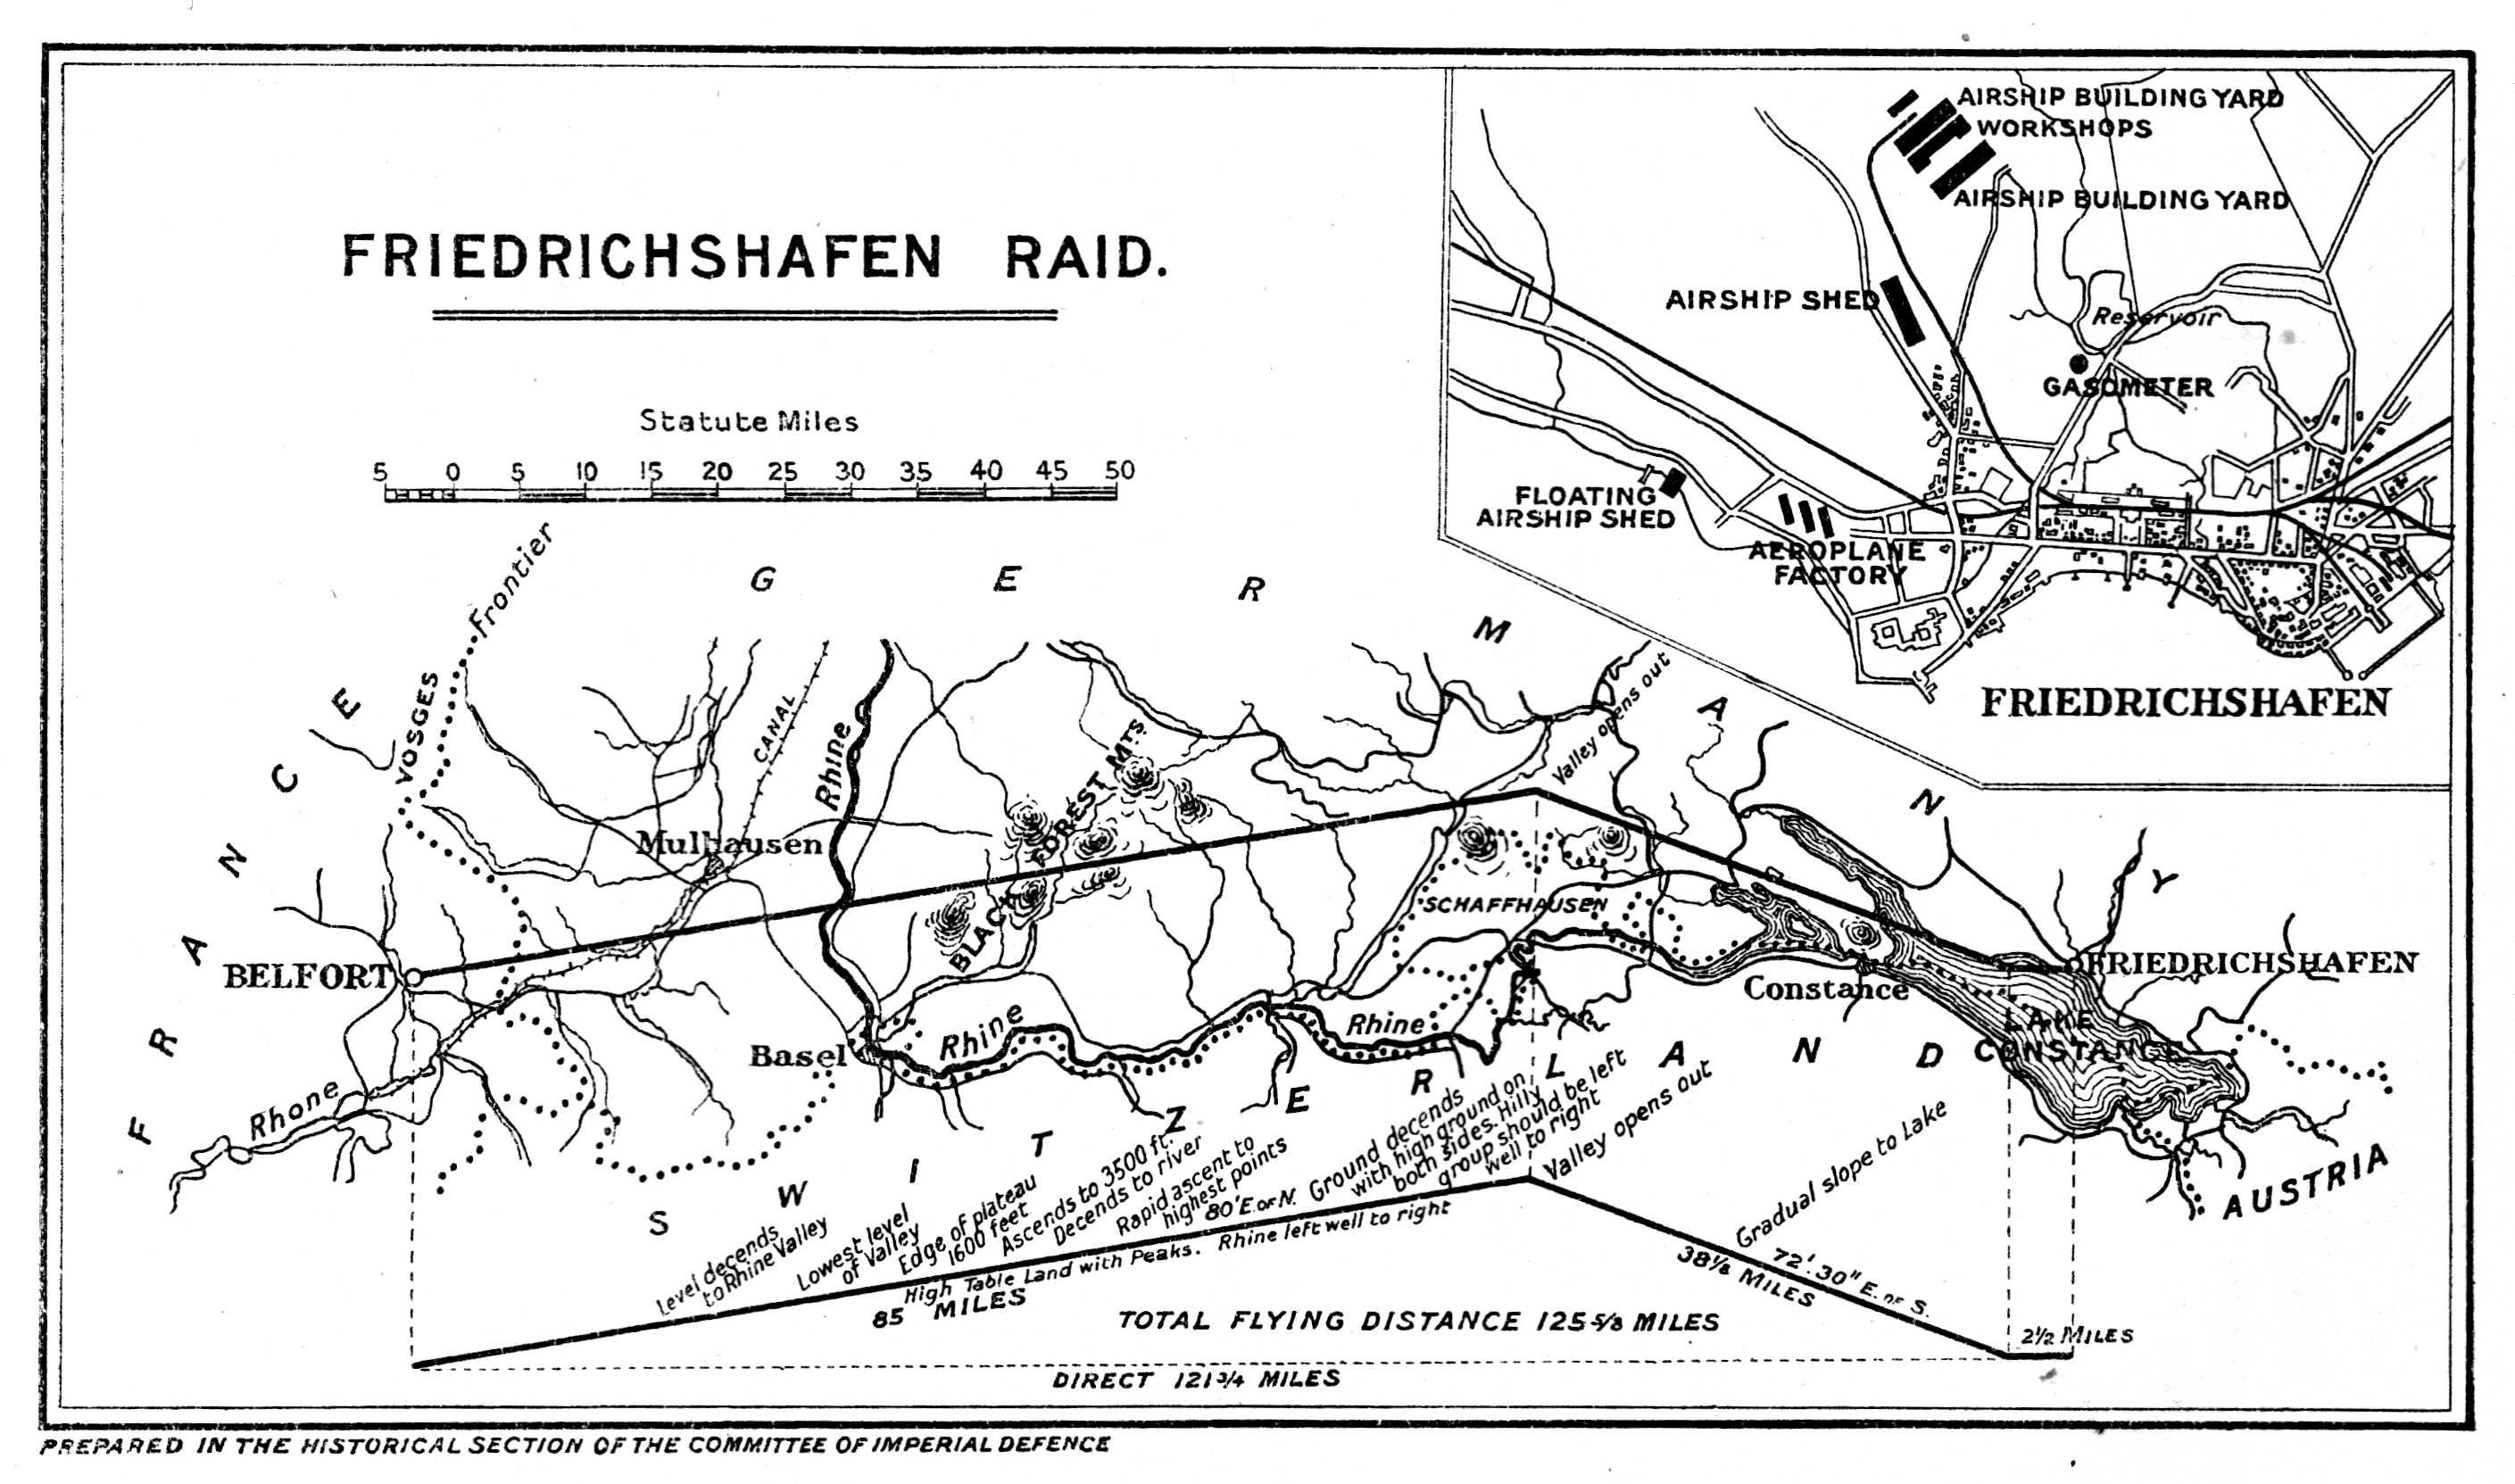 Operational plan of the Freidrichshafen raid today